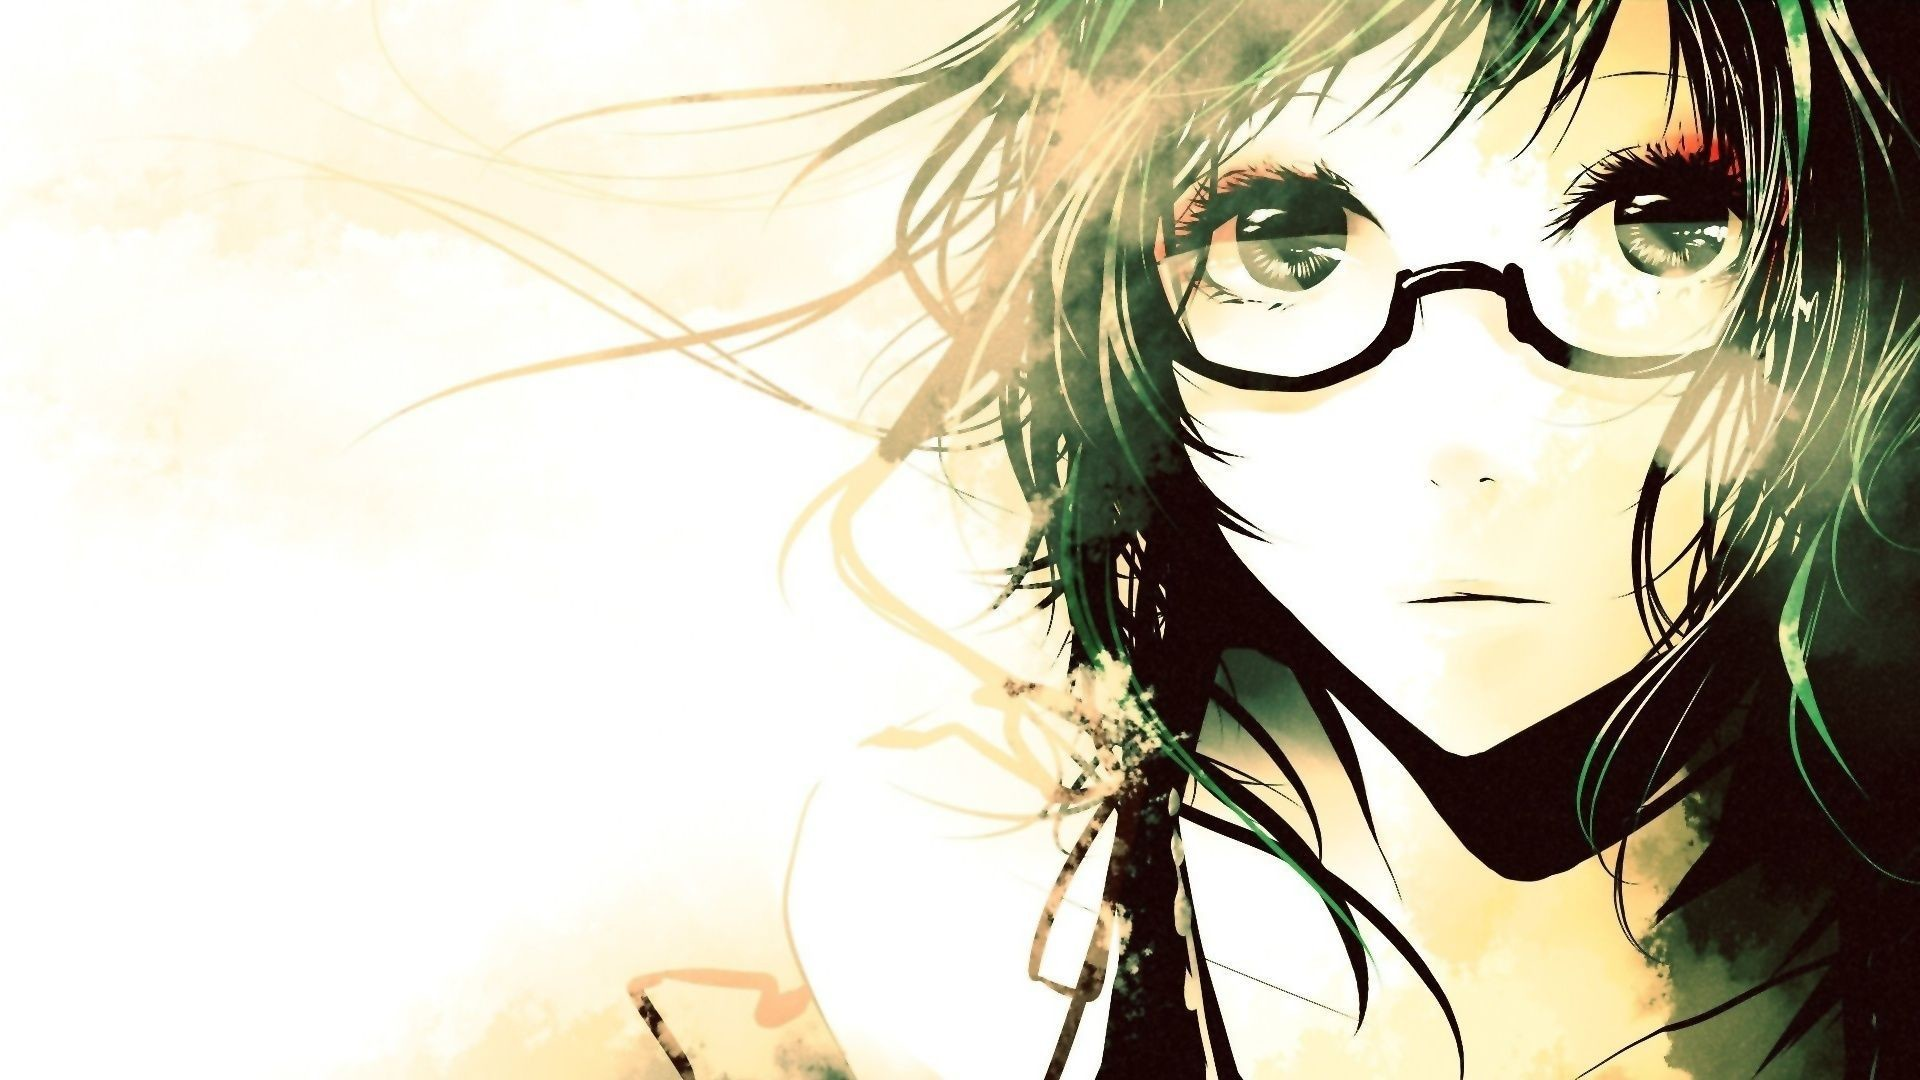 1920x1080 0 Anime Music Wallpapers Anime Music Wallpapers